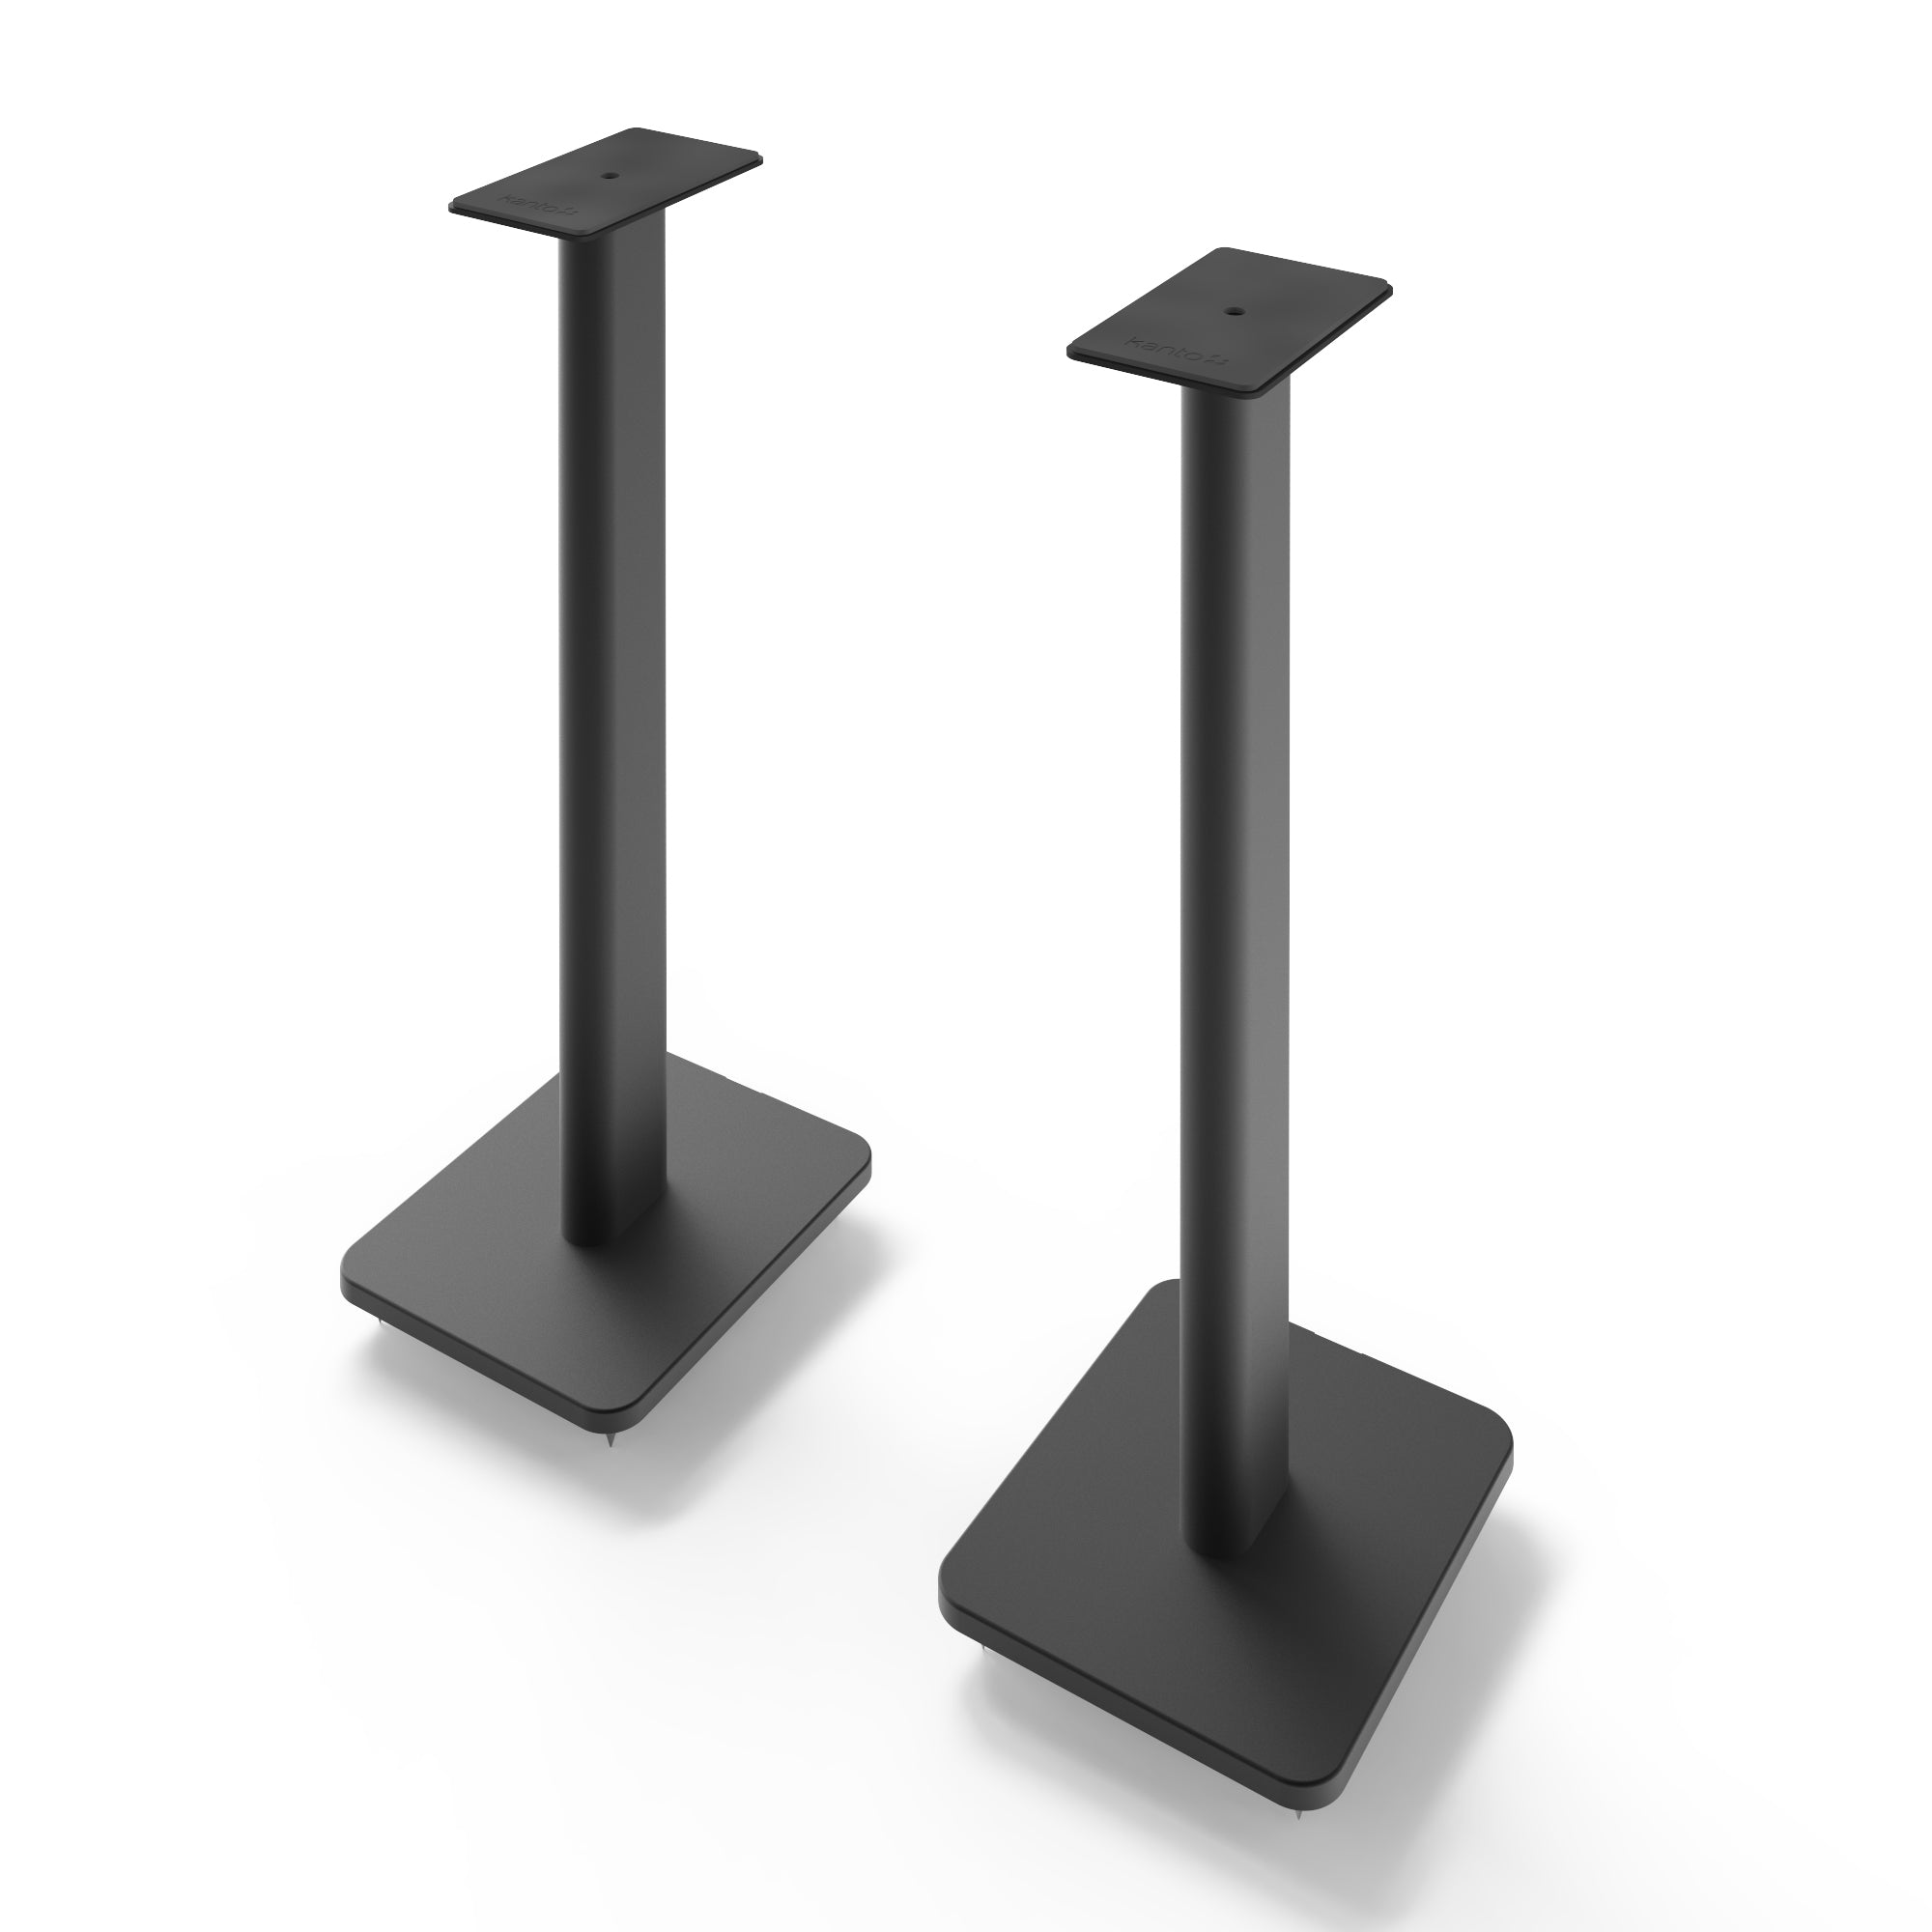 Edifier High End Bookshelf Speaker Stand Now Available In